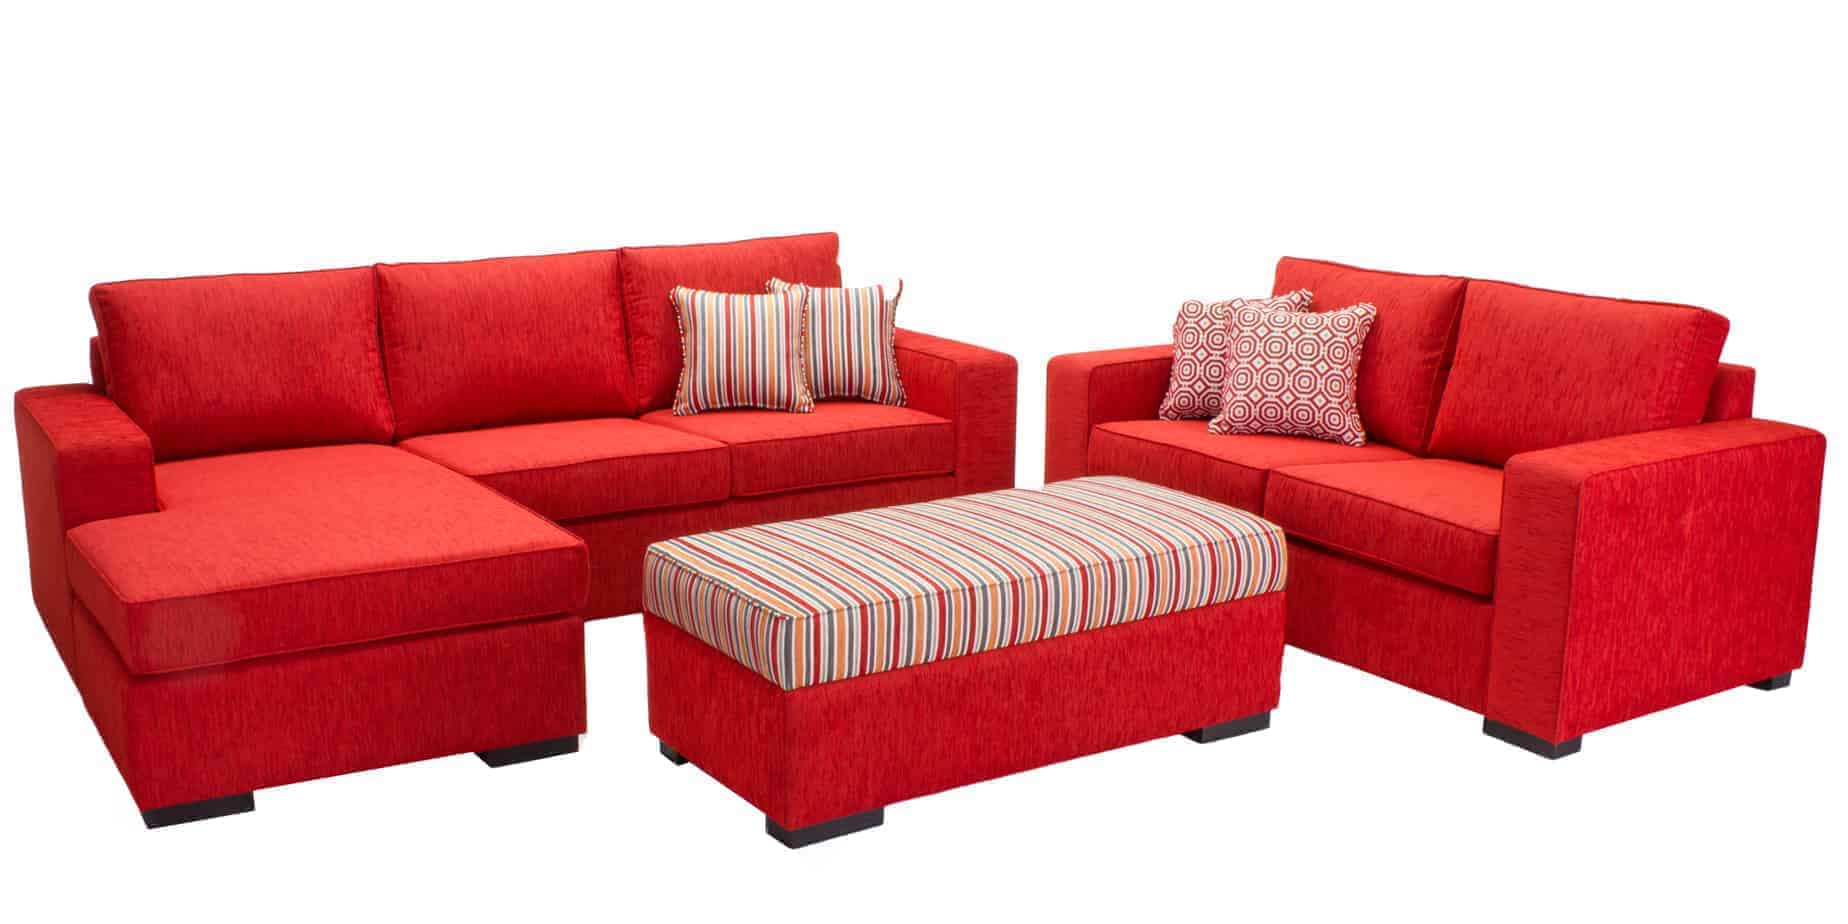 Sofa lounge Sydney Australian made custom made, buy direct from our Sydney Furniture Factory